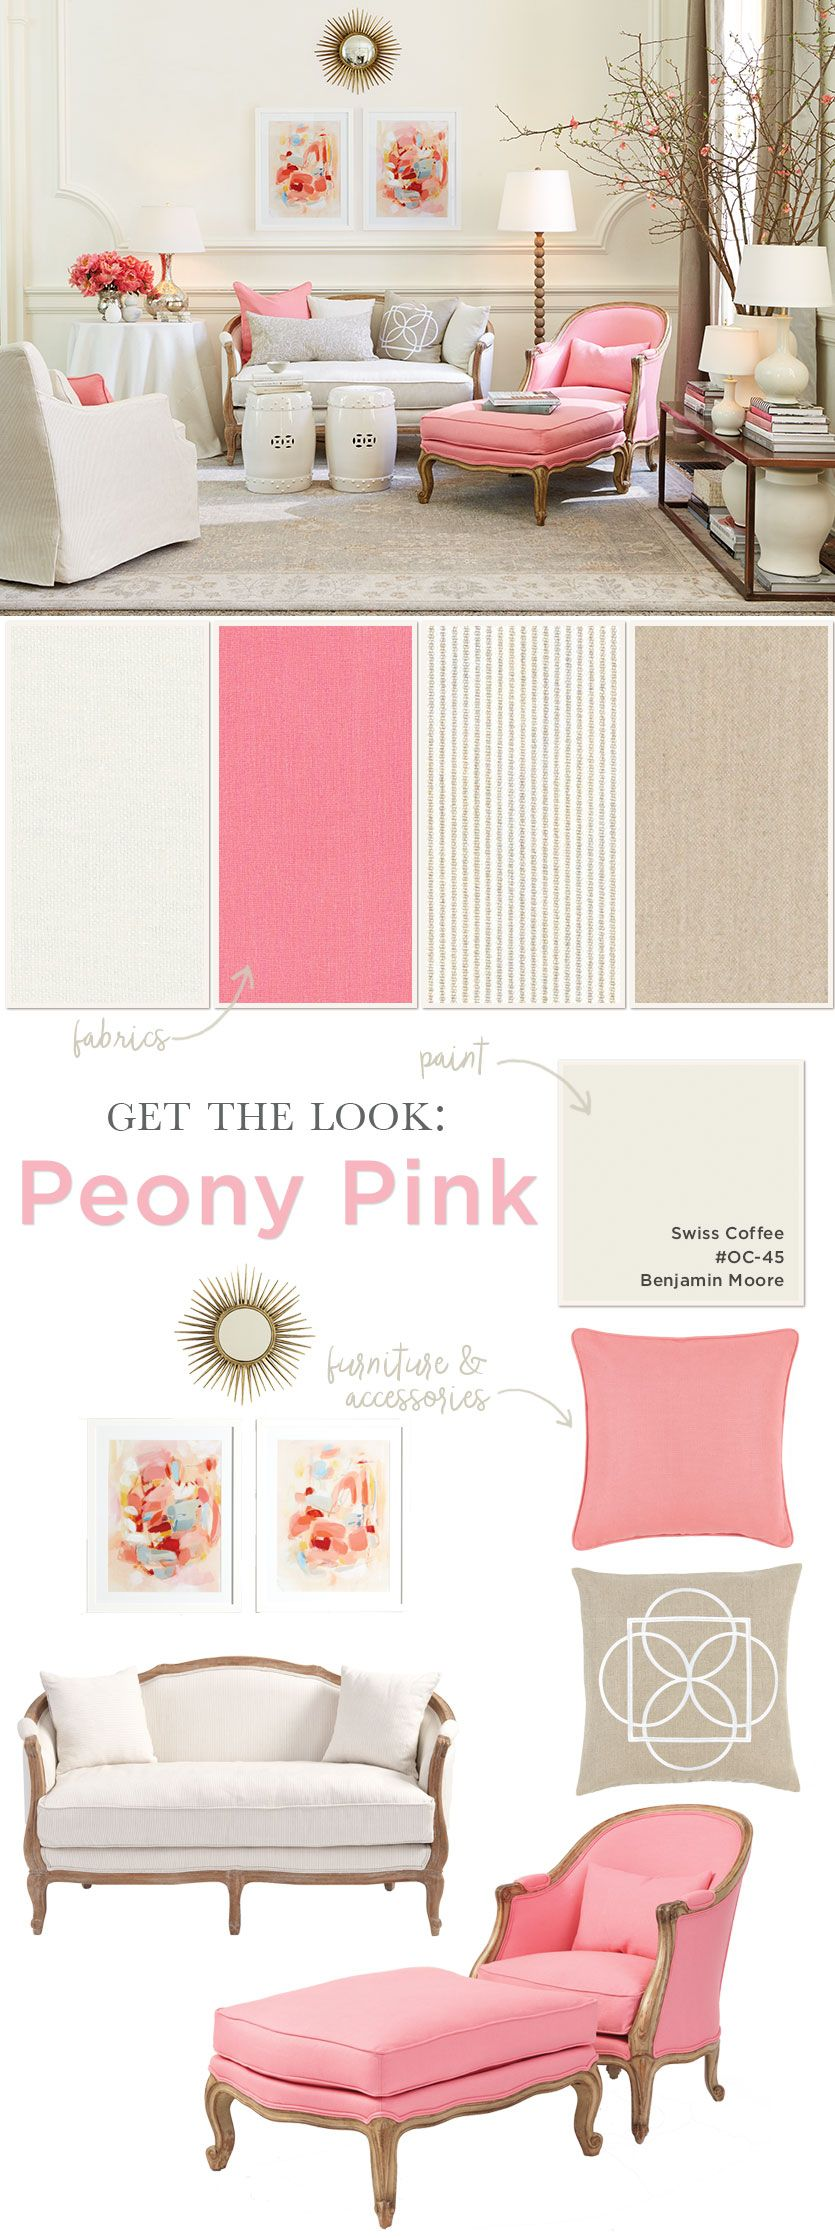 Suzanne Kasler\'s Pink Living Room | Peony, Living rooms and Room